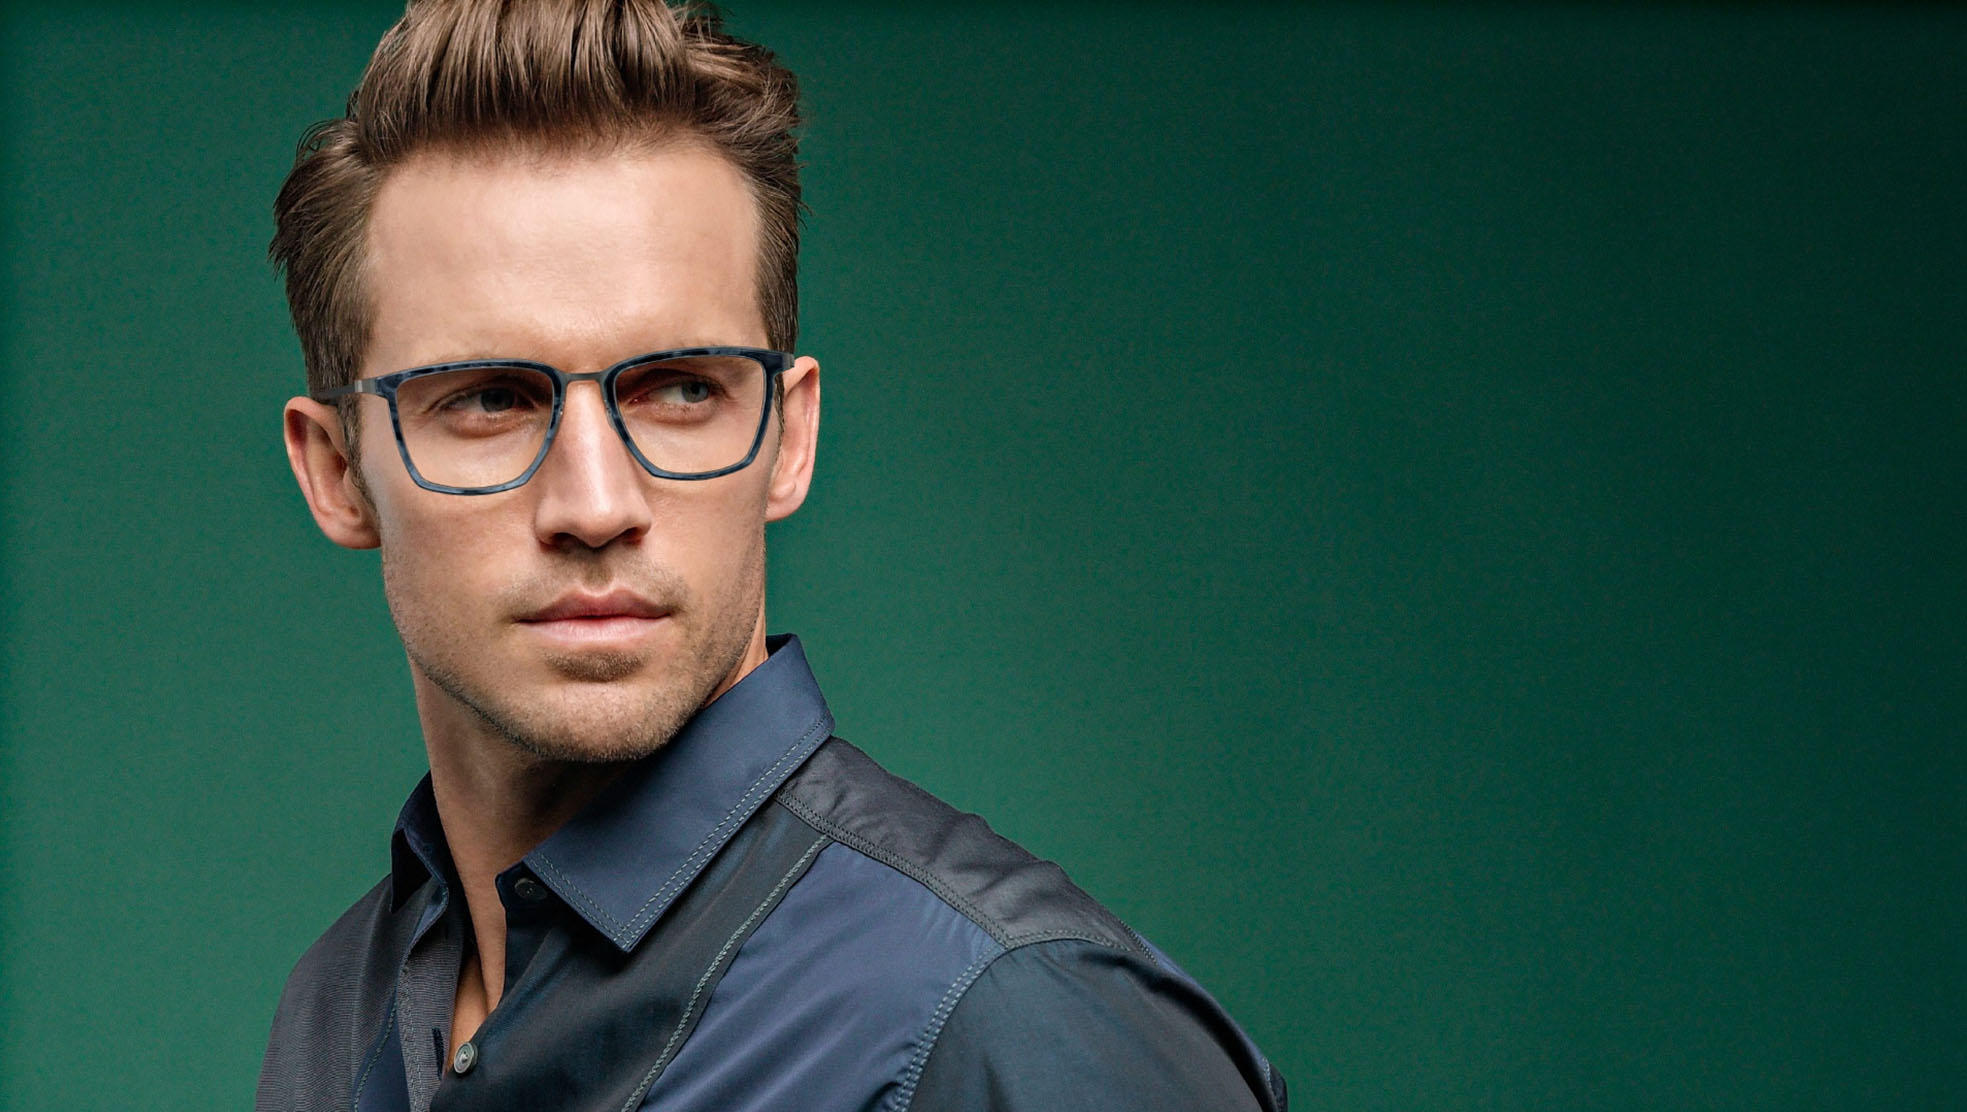 b3ff91f51eb vmlookbook1801web-13 - Alexander Bain   Murray Opticians